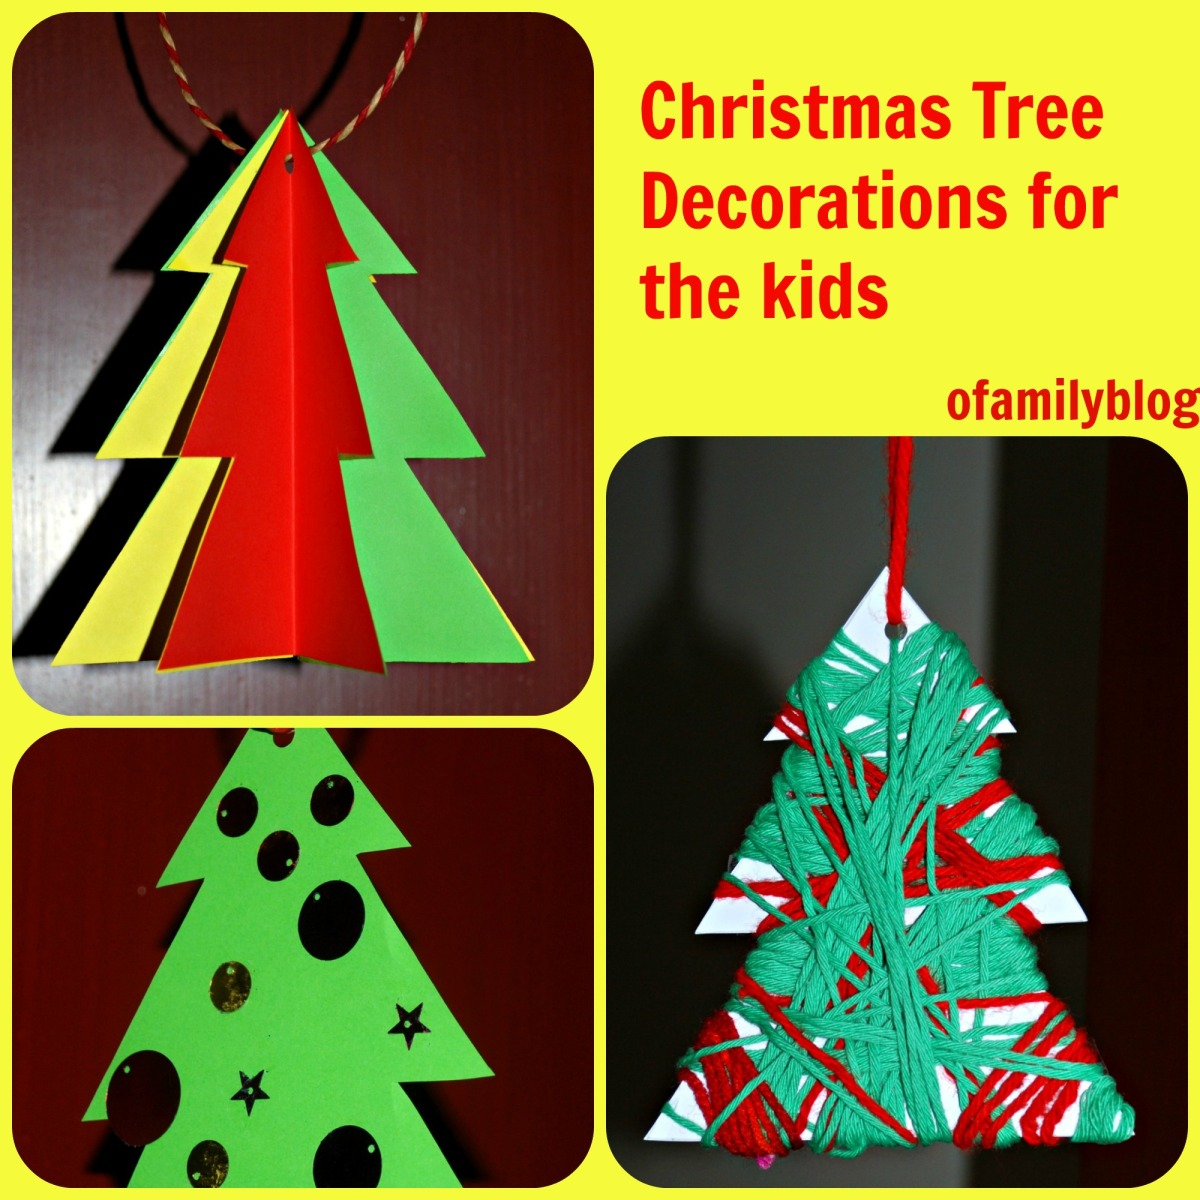 Christmas Tree Decorations For Kids To Make: Home-made Christmas Tree Decorations For The Kids